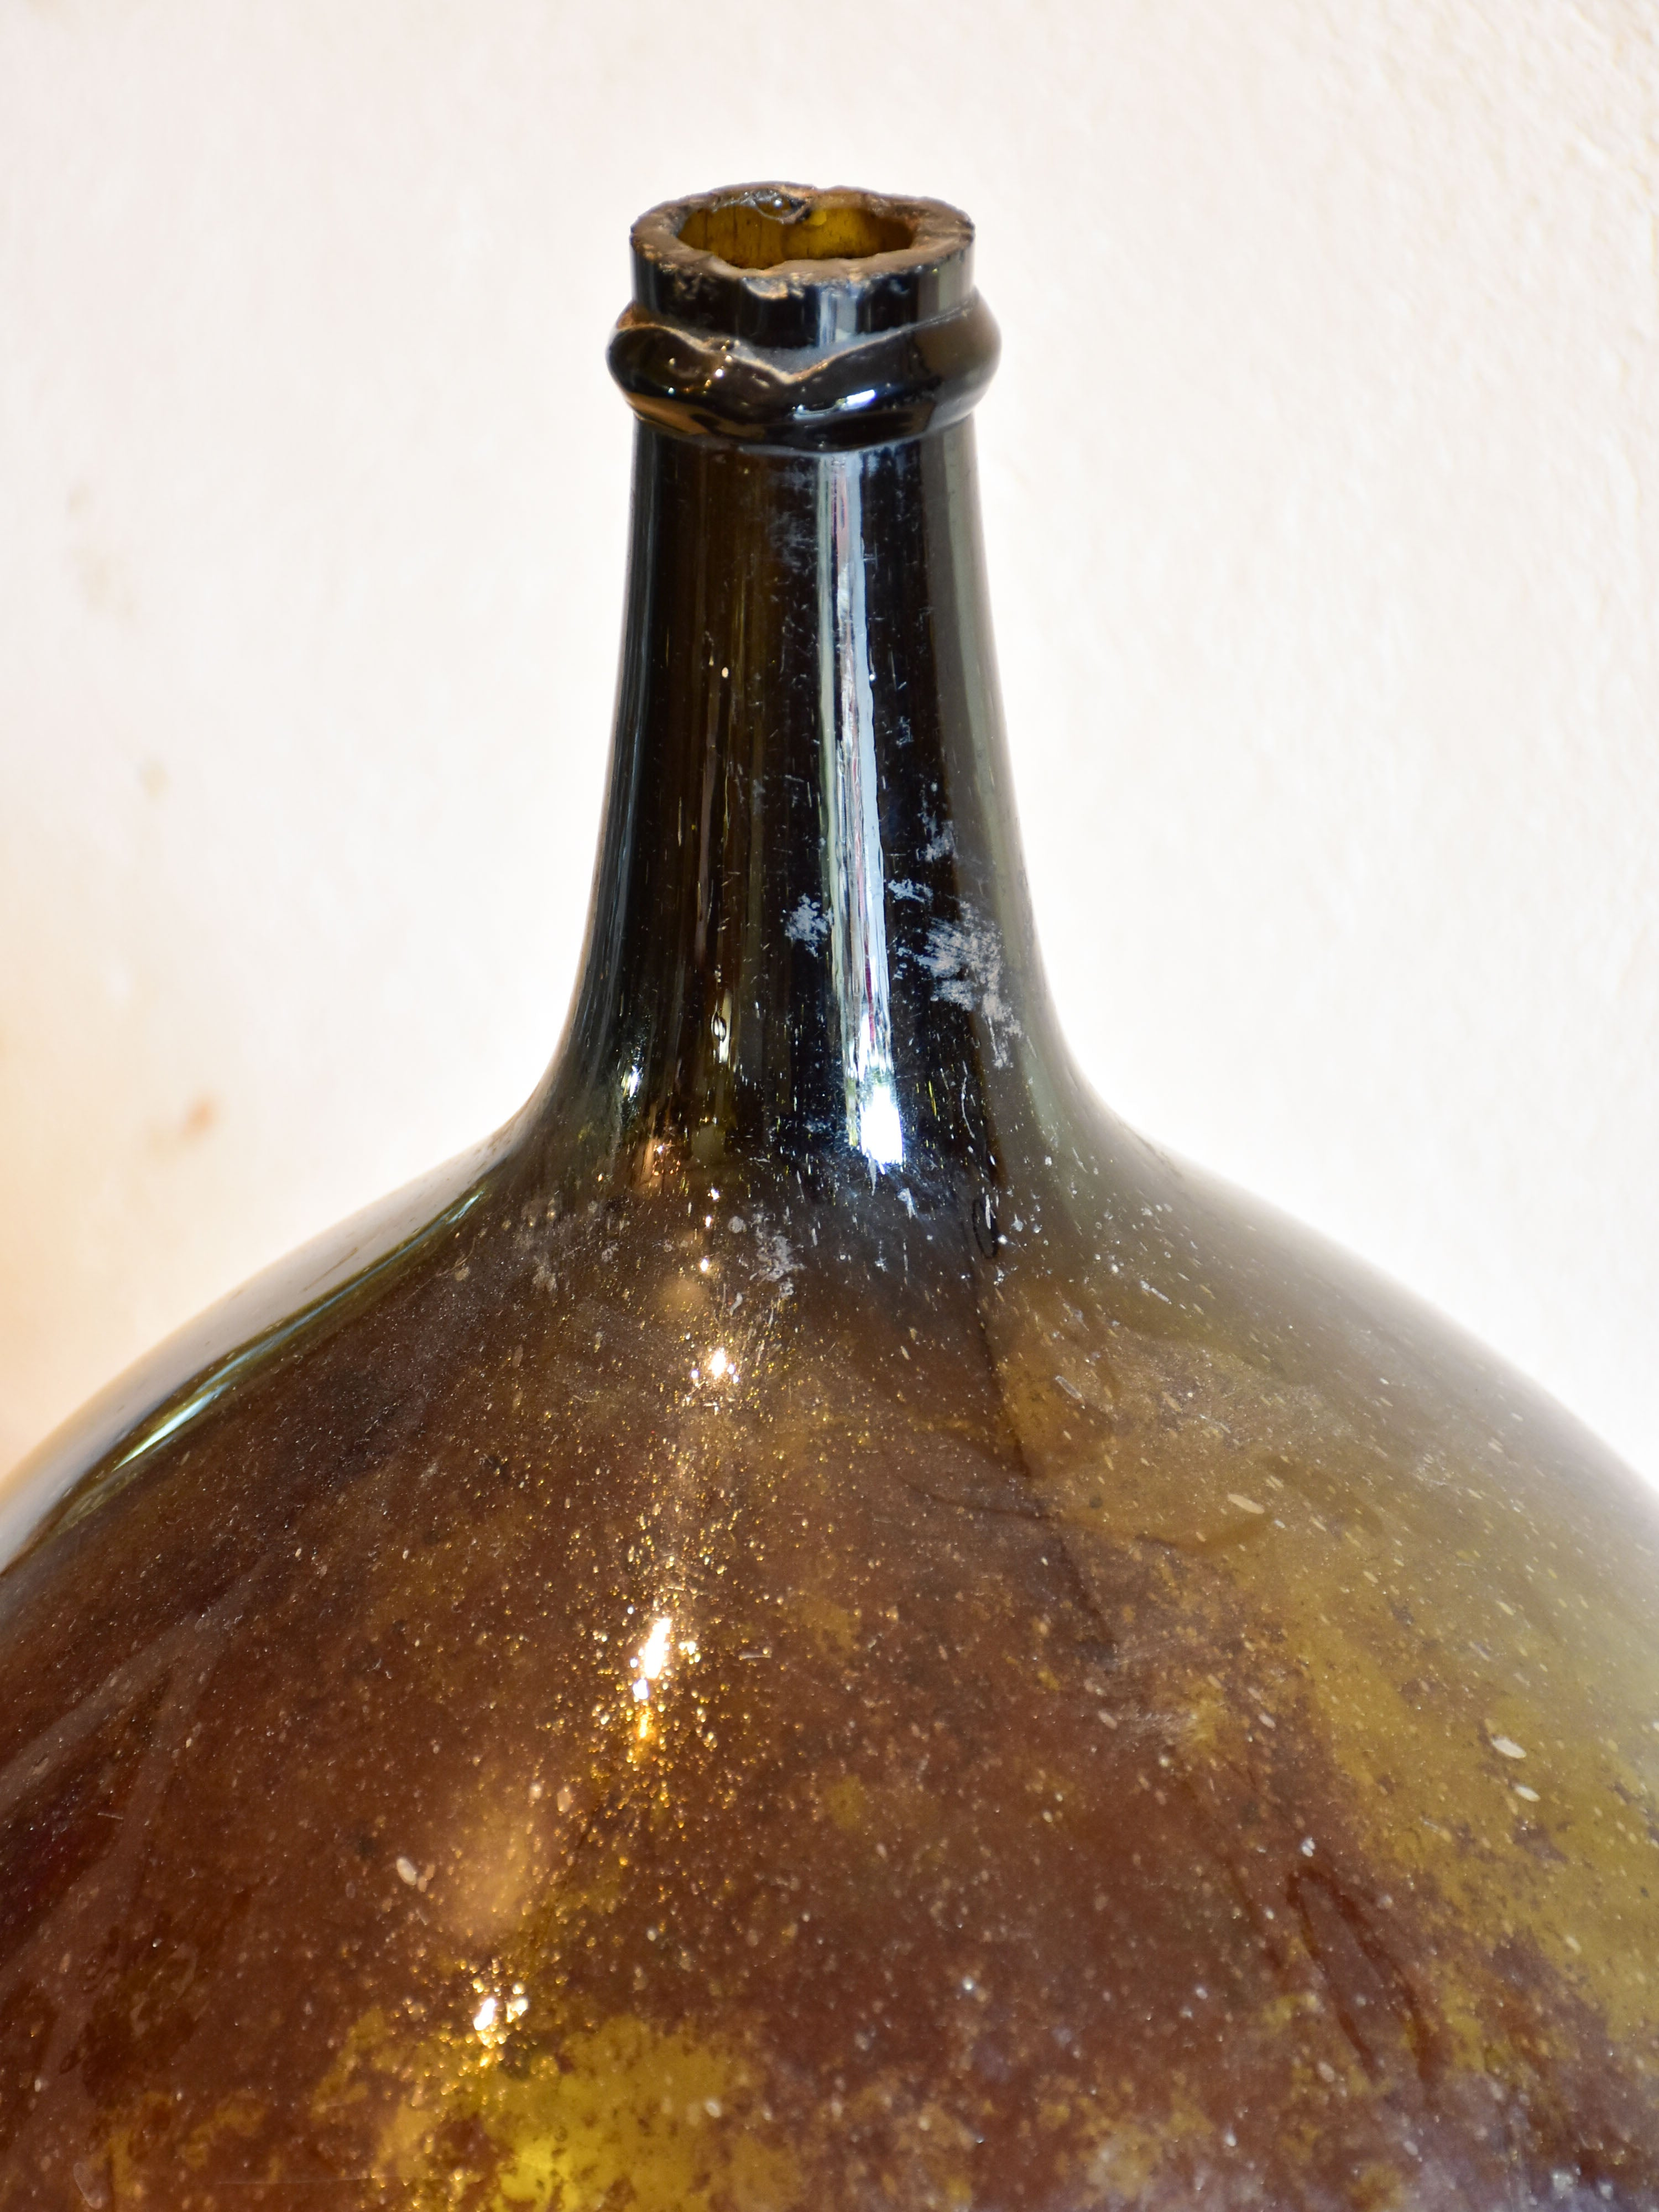 Antique demijohn bottle with dark Trinquetaille glass